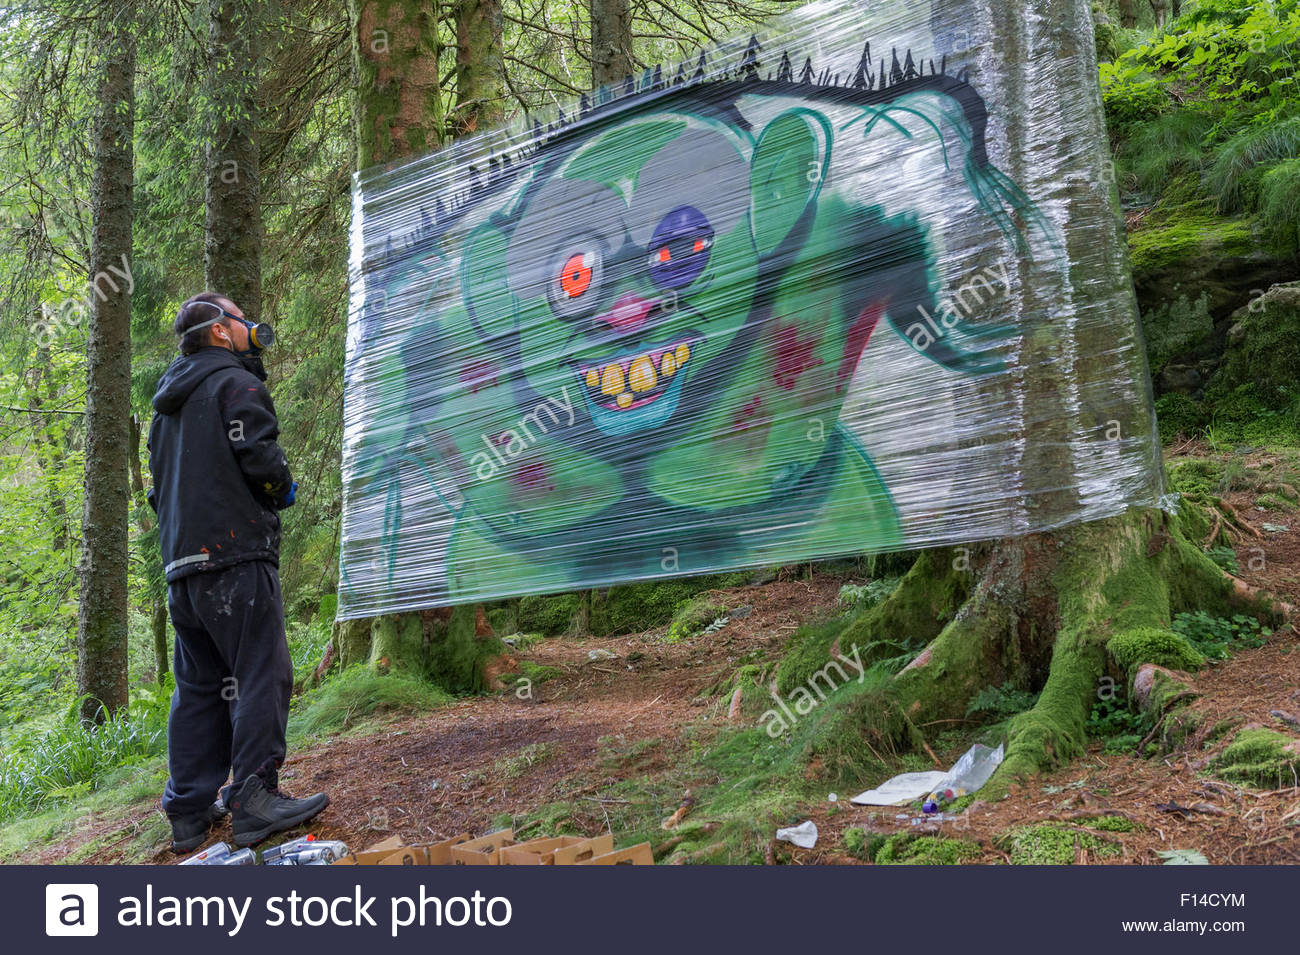 graffiti artist with spray can painting a troll onto